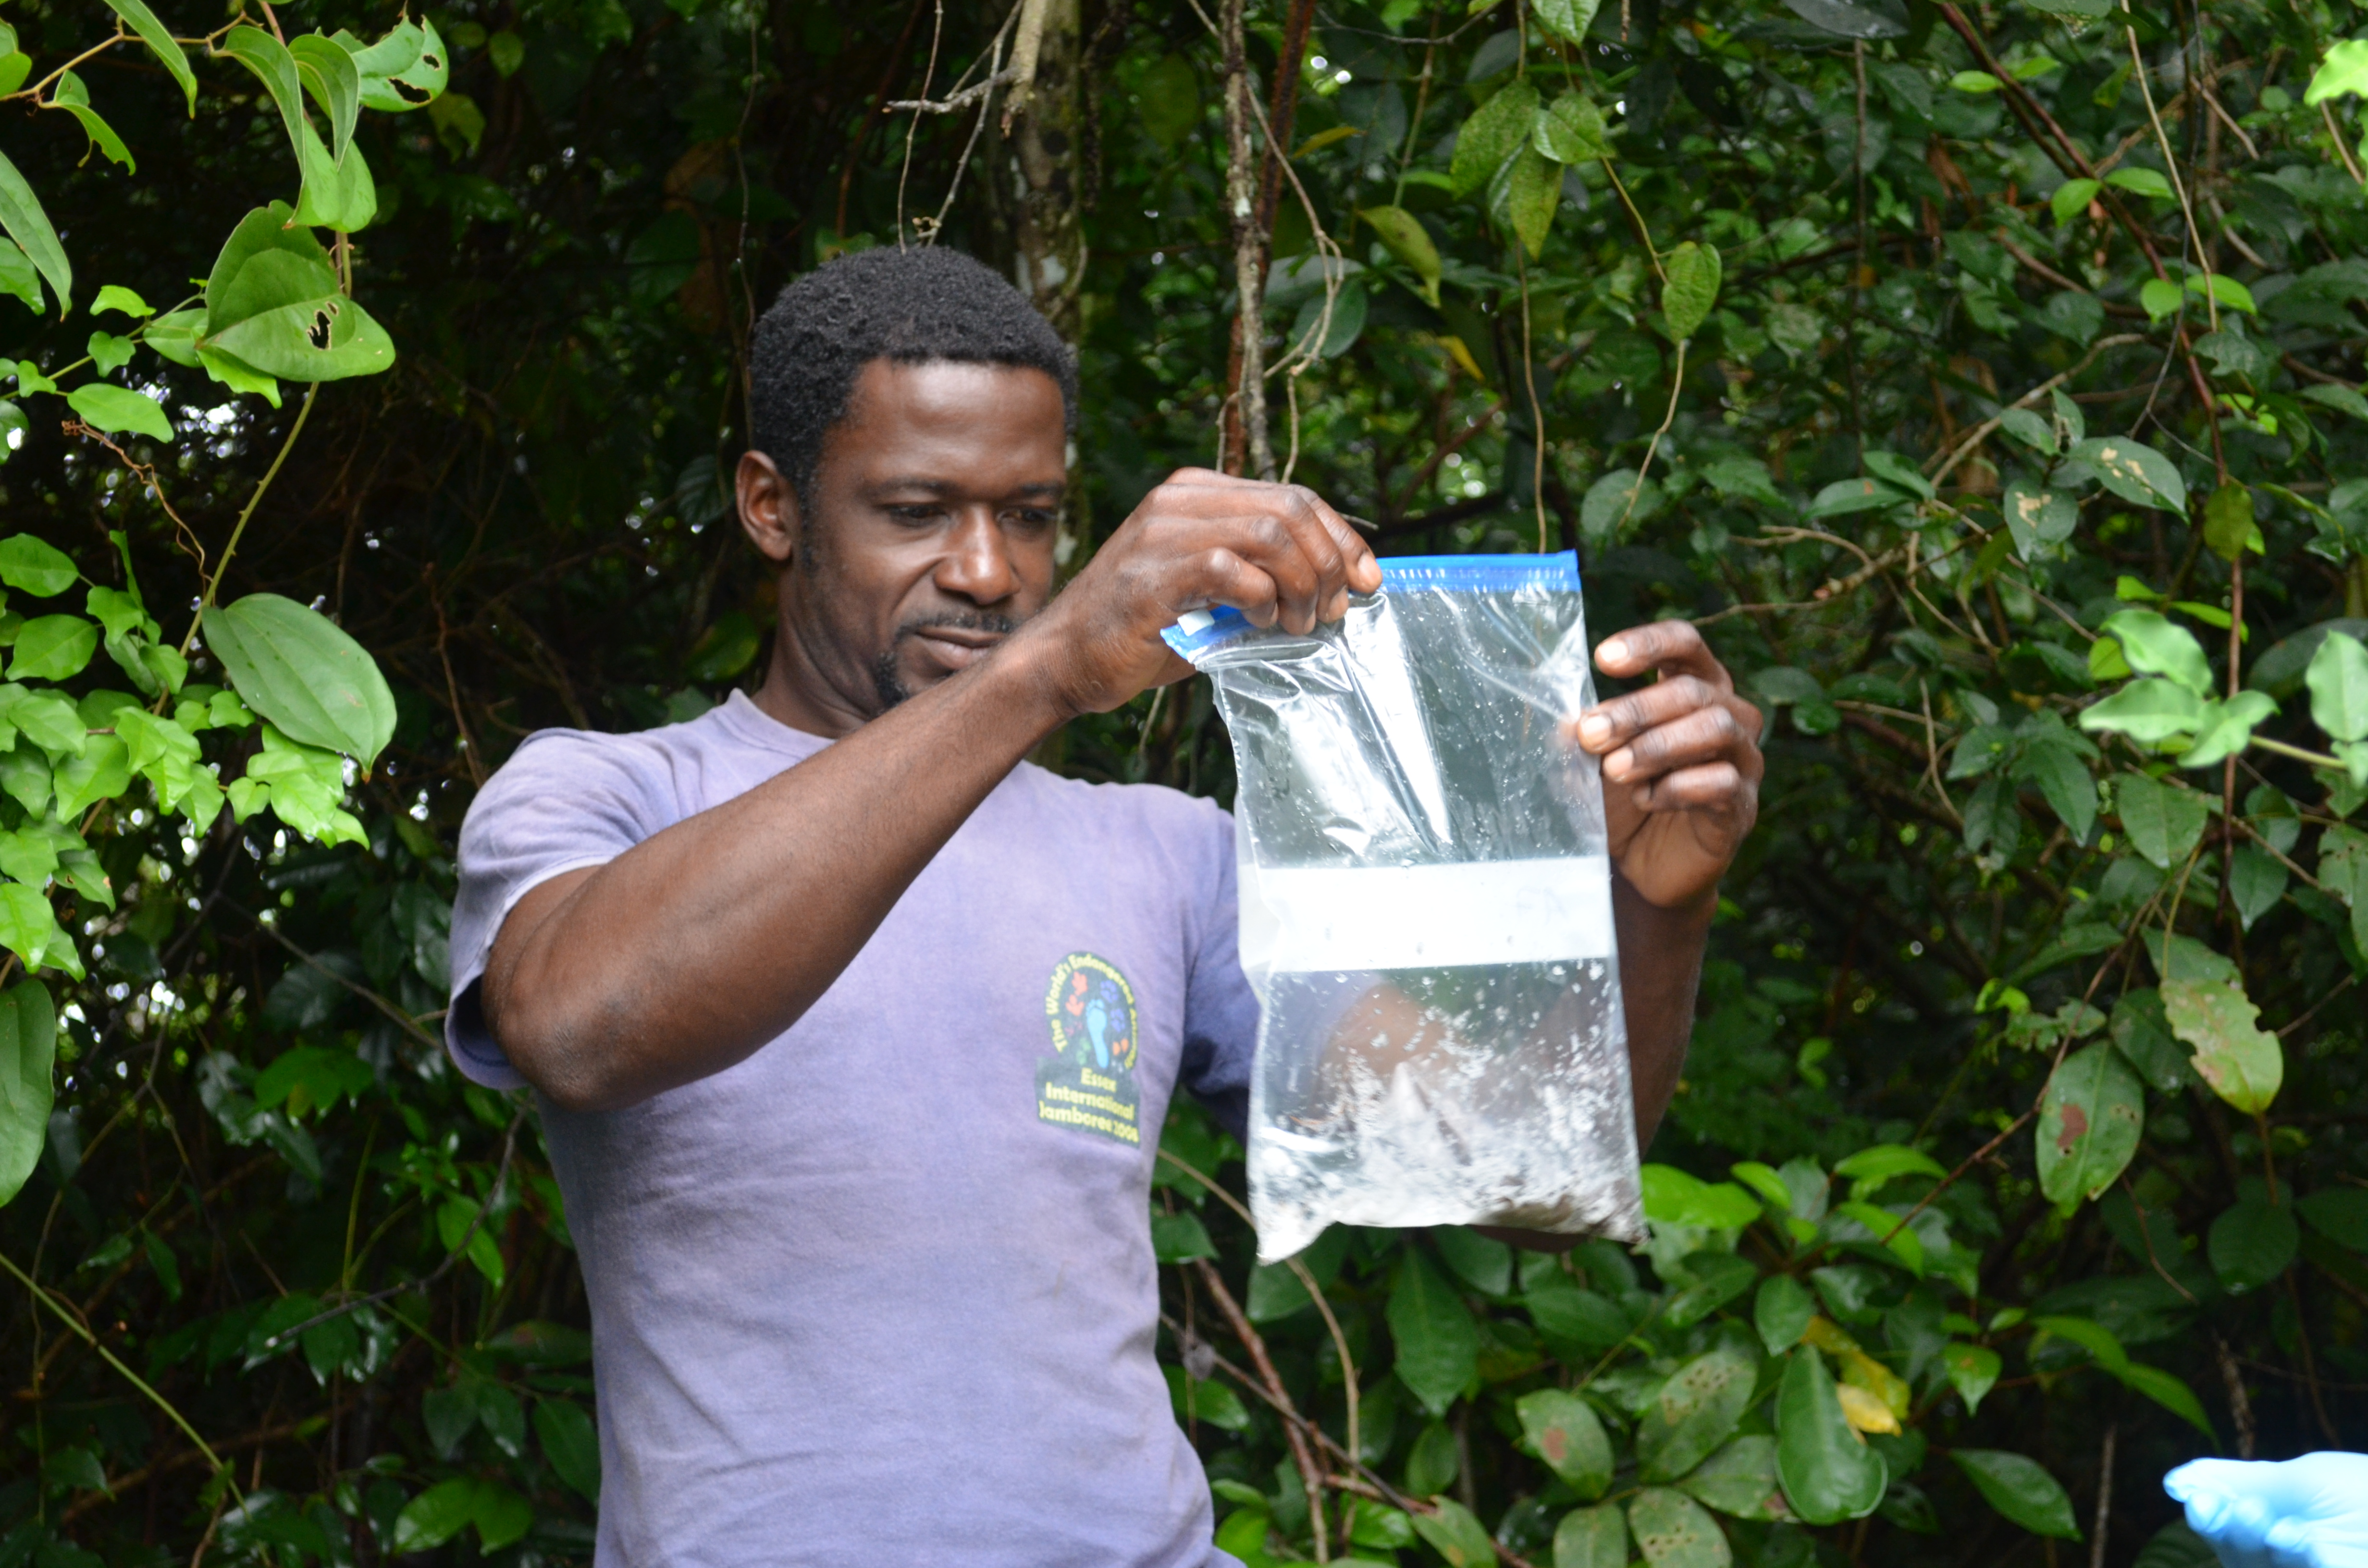 Pierre Nicaise Guissiegou, road project field assistant, collecting frogs in Gabon.